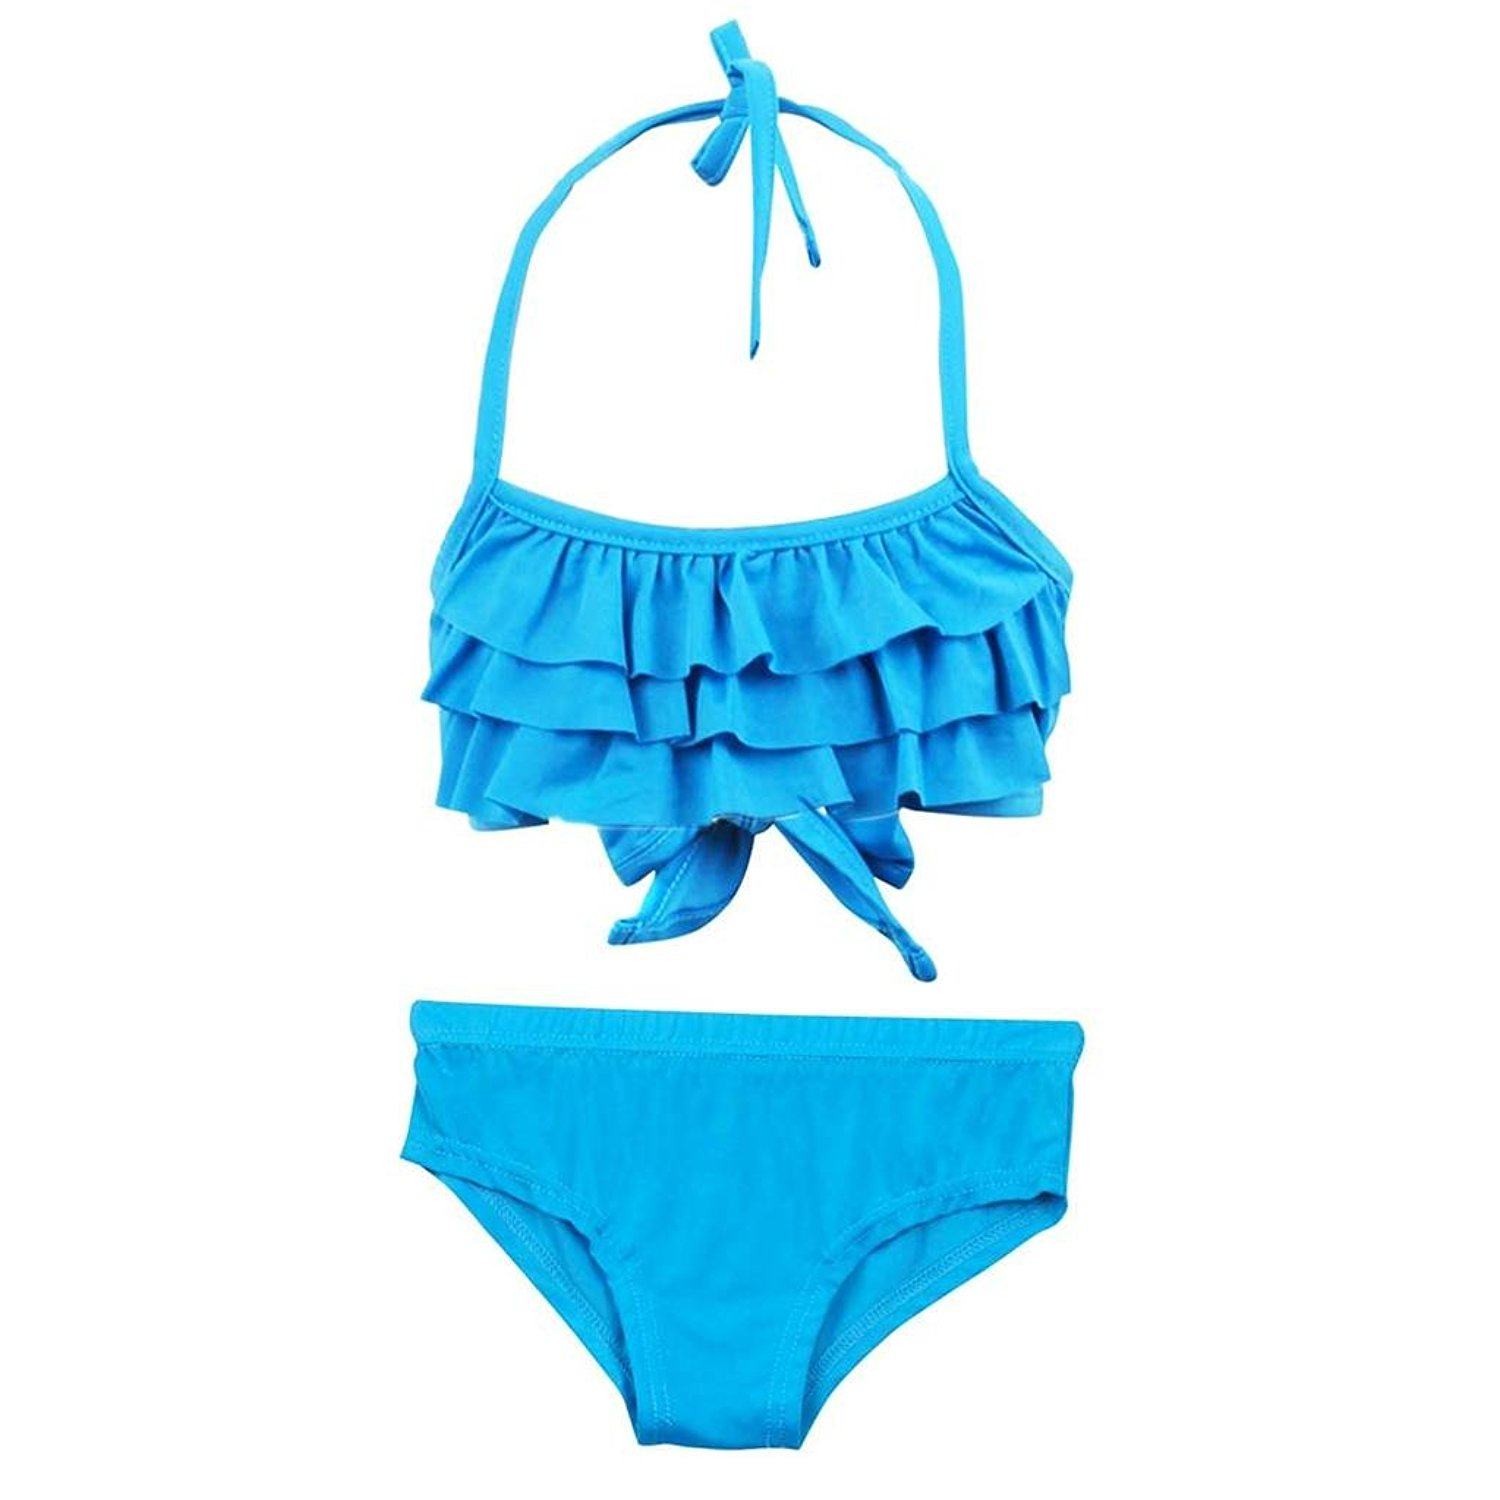 0c9c8292674ce ... Off Shoulder Printed Cute Bikini Sets. null. null. Get Quotations ·  Bylulis Cute 2 Pieces Beach Bikini Swimsuits Bathing Suit for Kids Girls